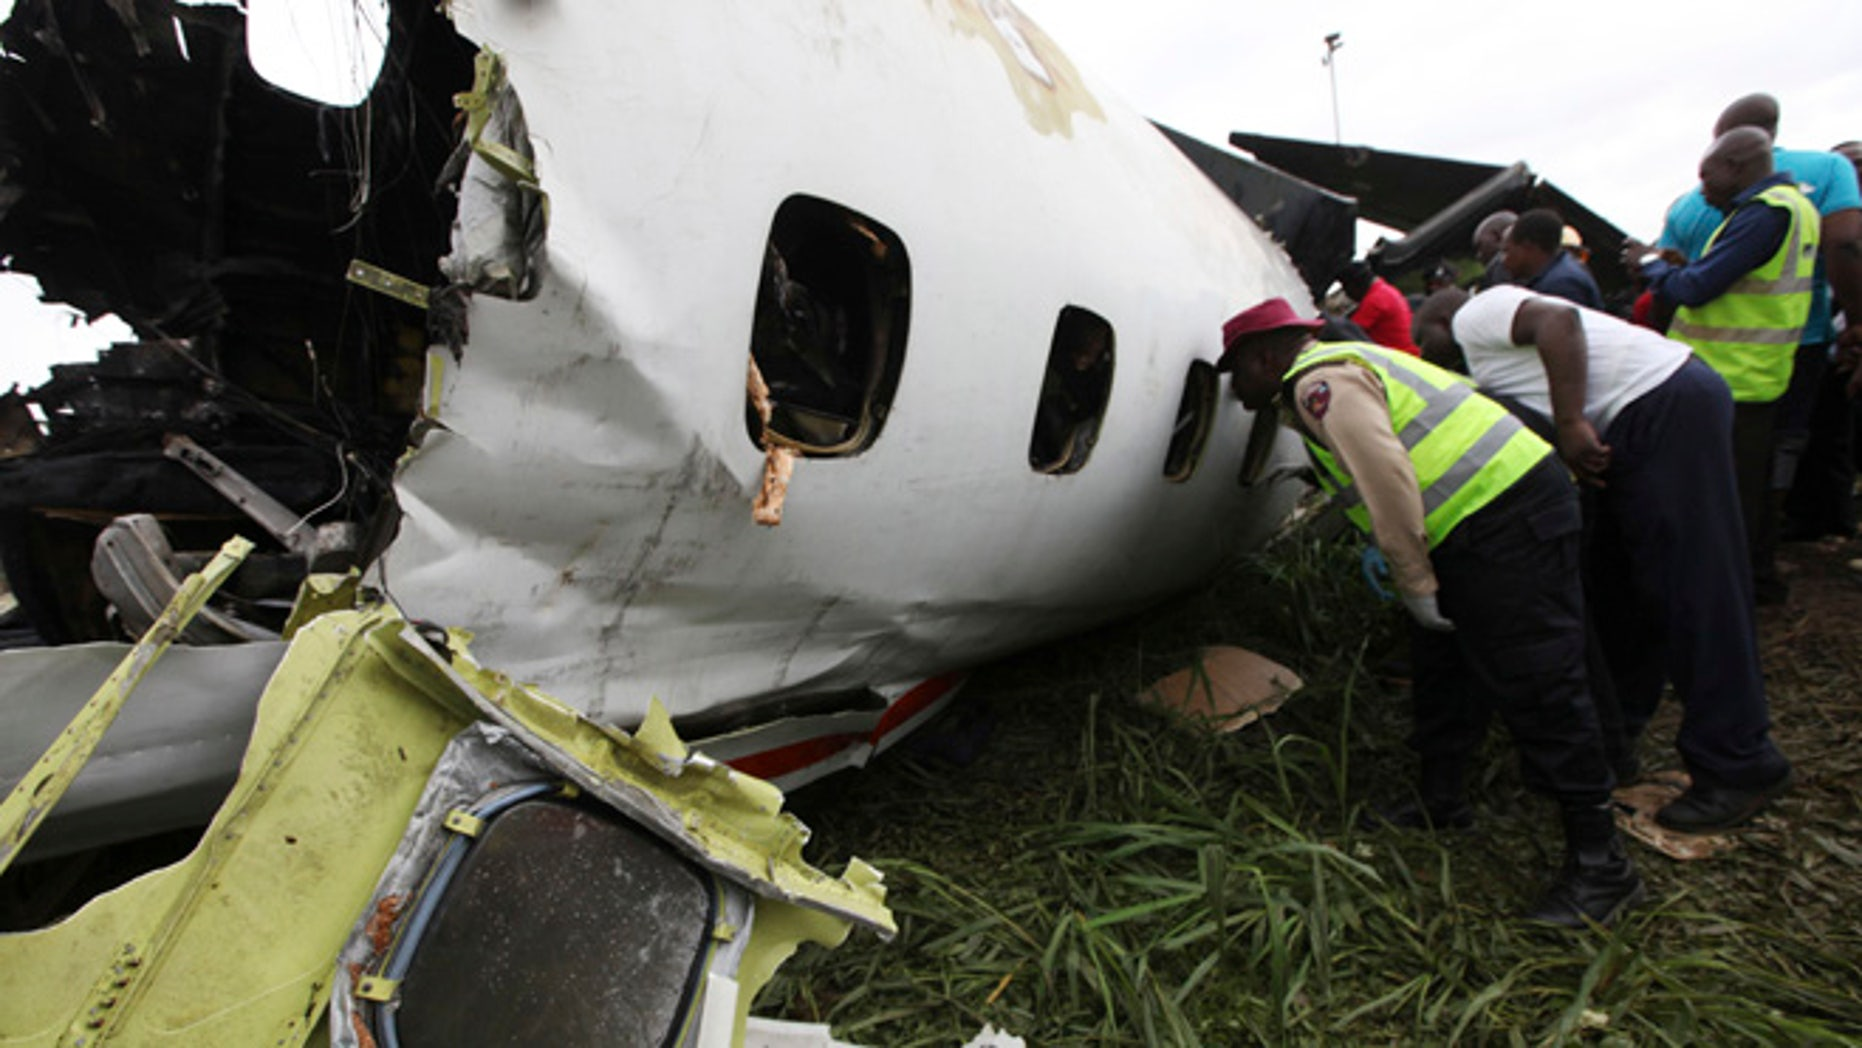 Oct. 3, 2013: Rescue workers peer into the wreckage of a charter passenger jet which crashed soon after take off from Lagos airport, Nigeria. Officials said there were casualties but refused to confirm reports of several deaths.